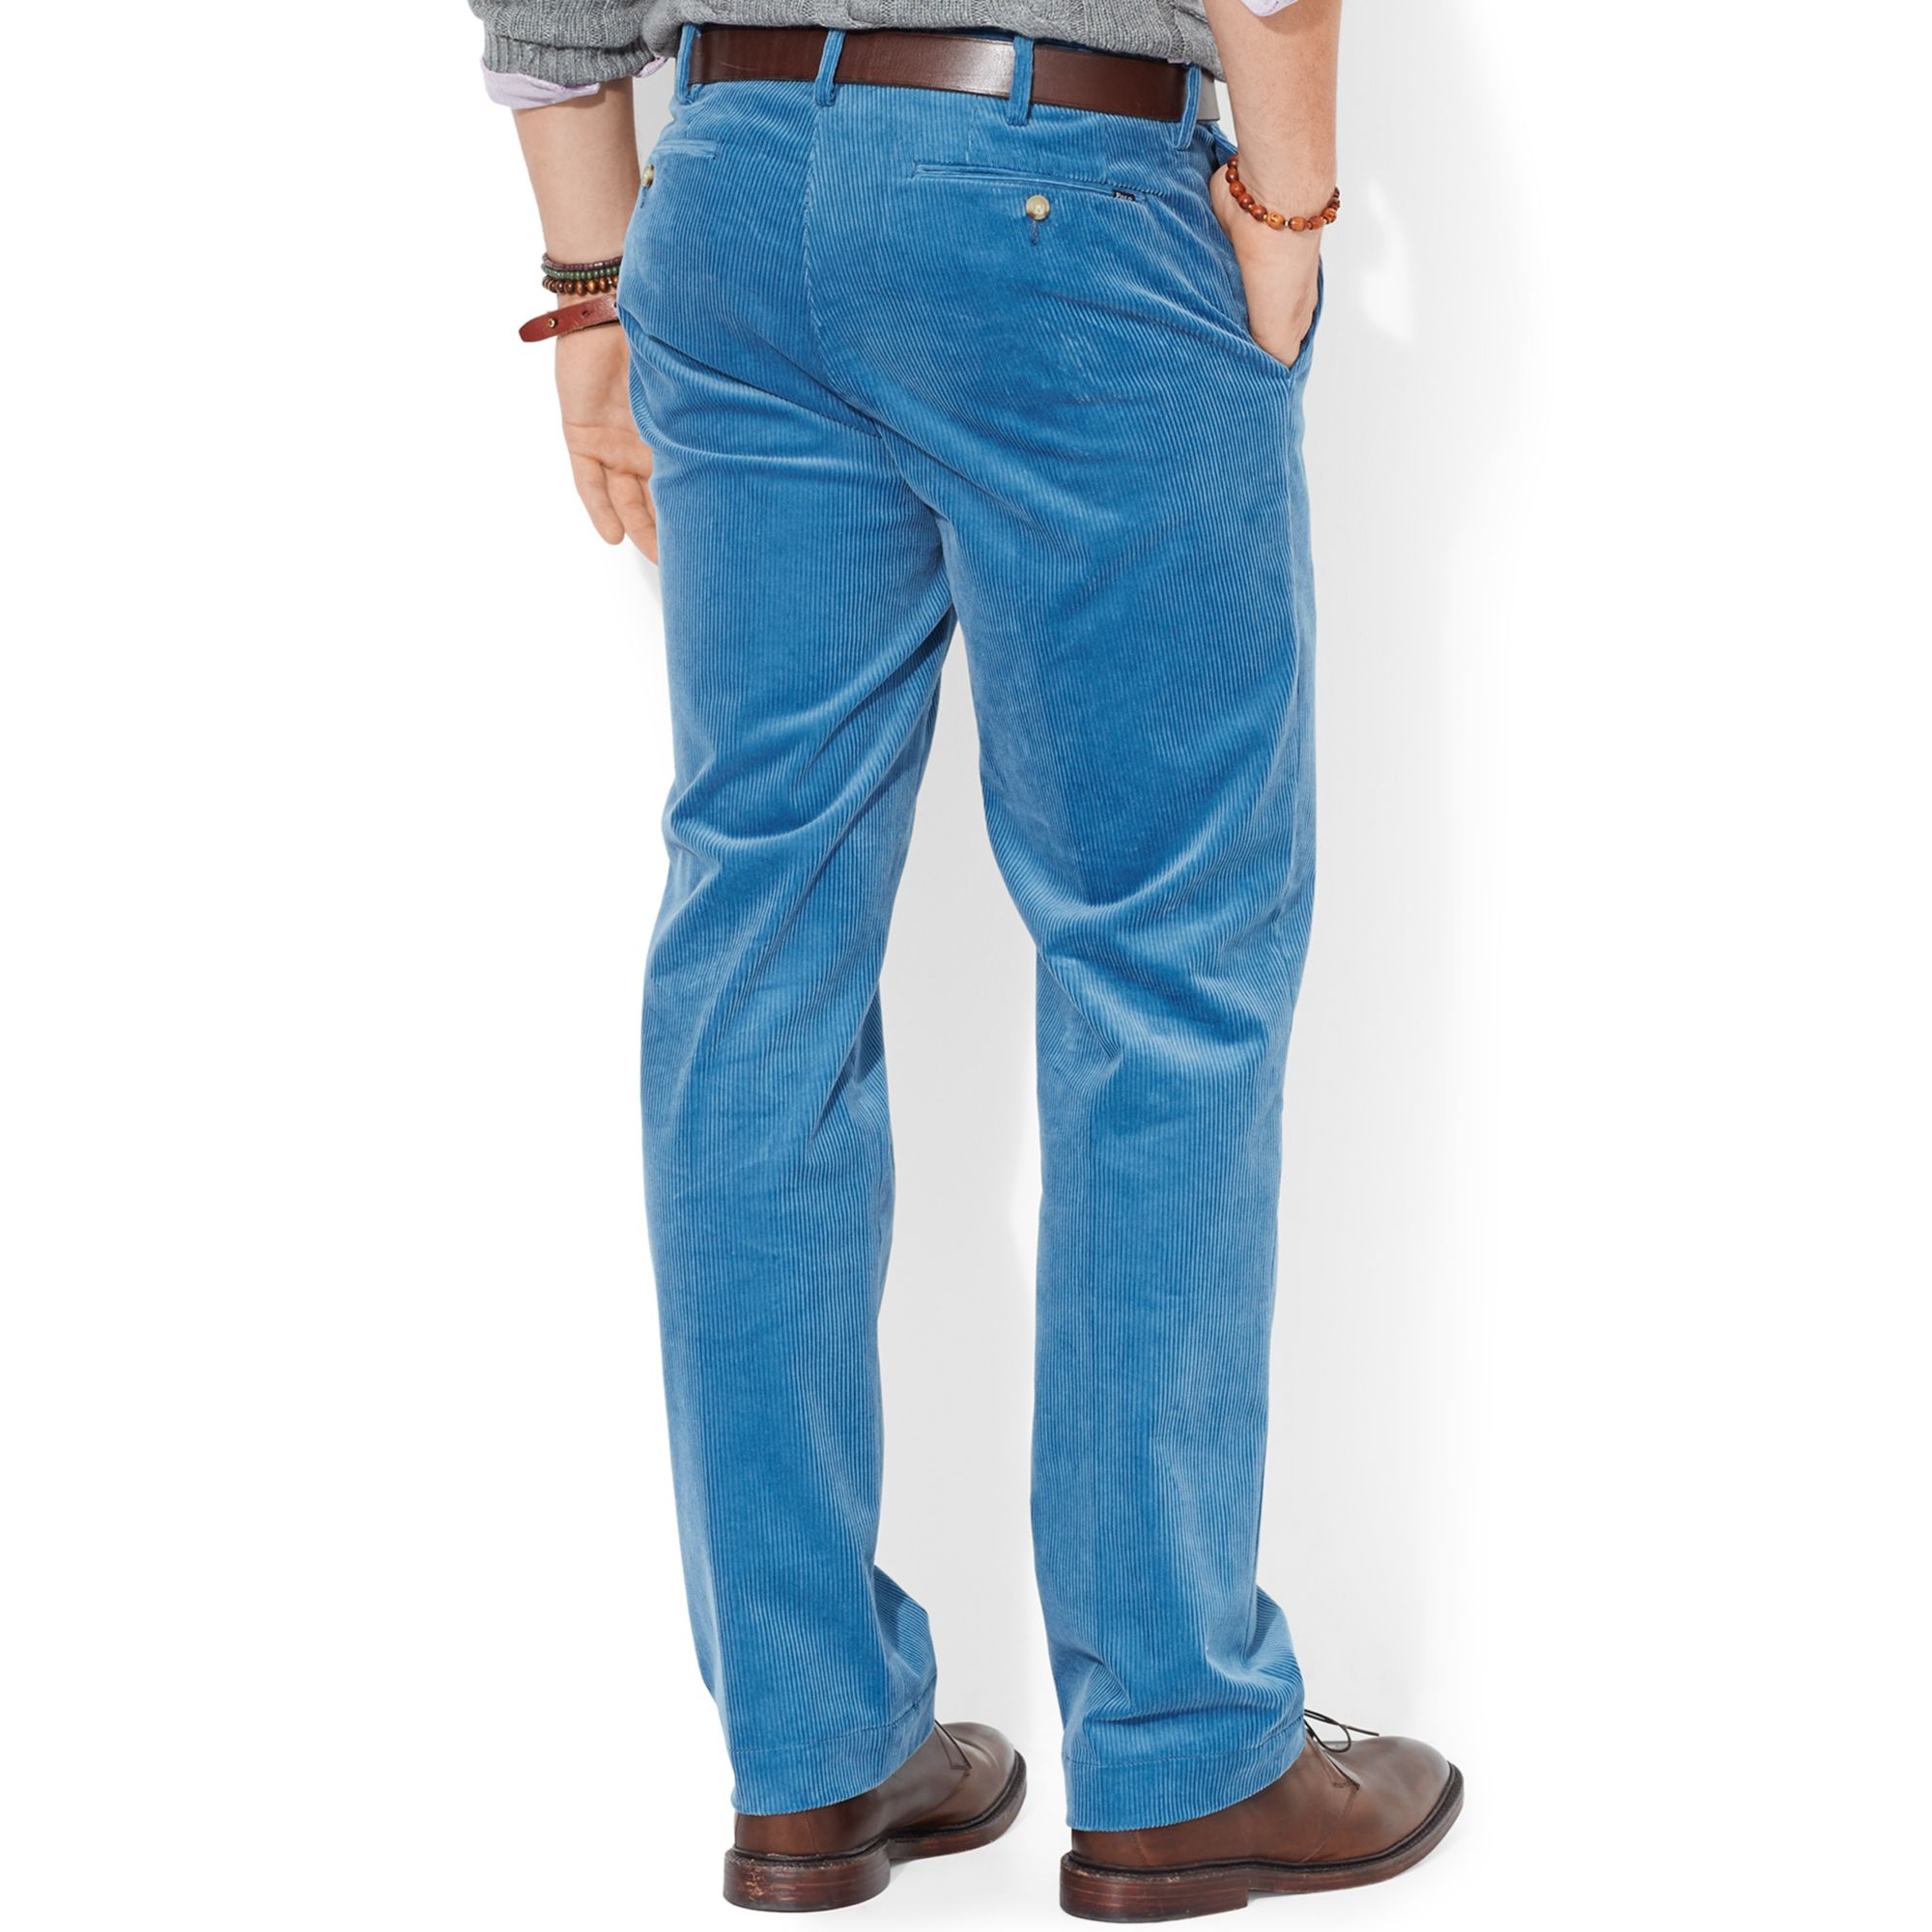 polo-ralph-lauren-blue-classic-fit-newport-corduroy-pants-product-1-24377709-0-416648118-normal.jpeg